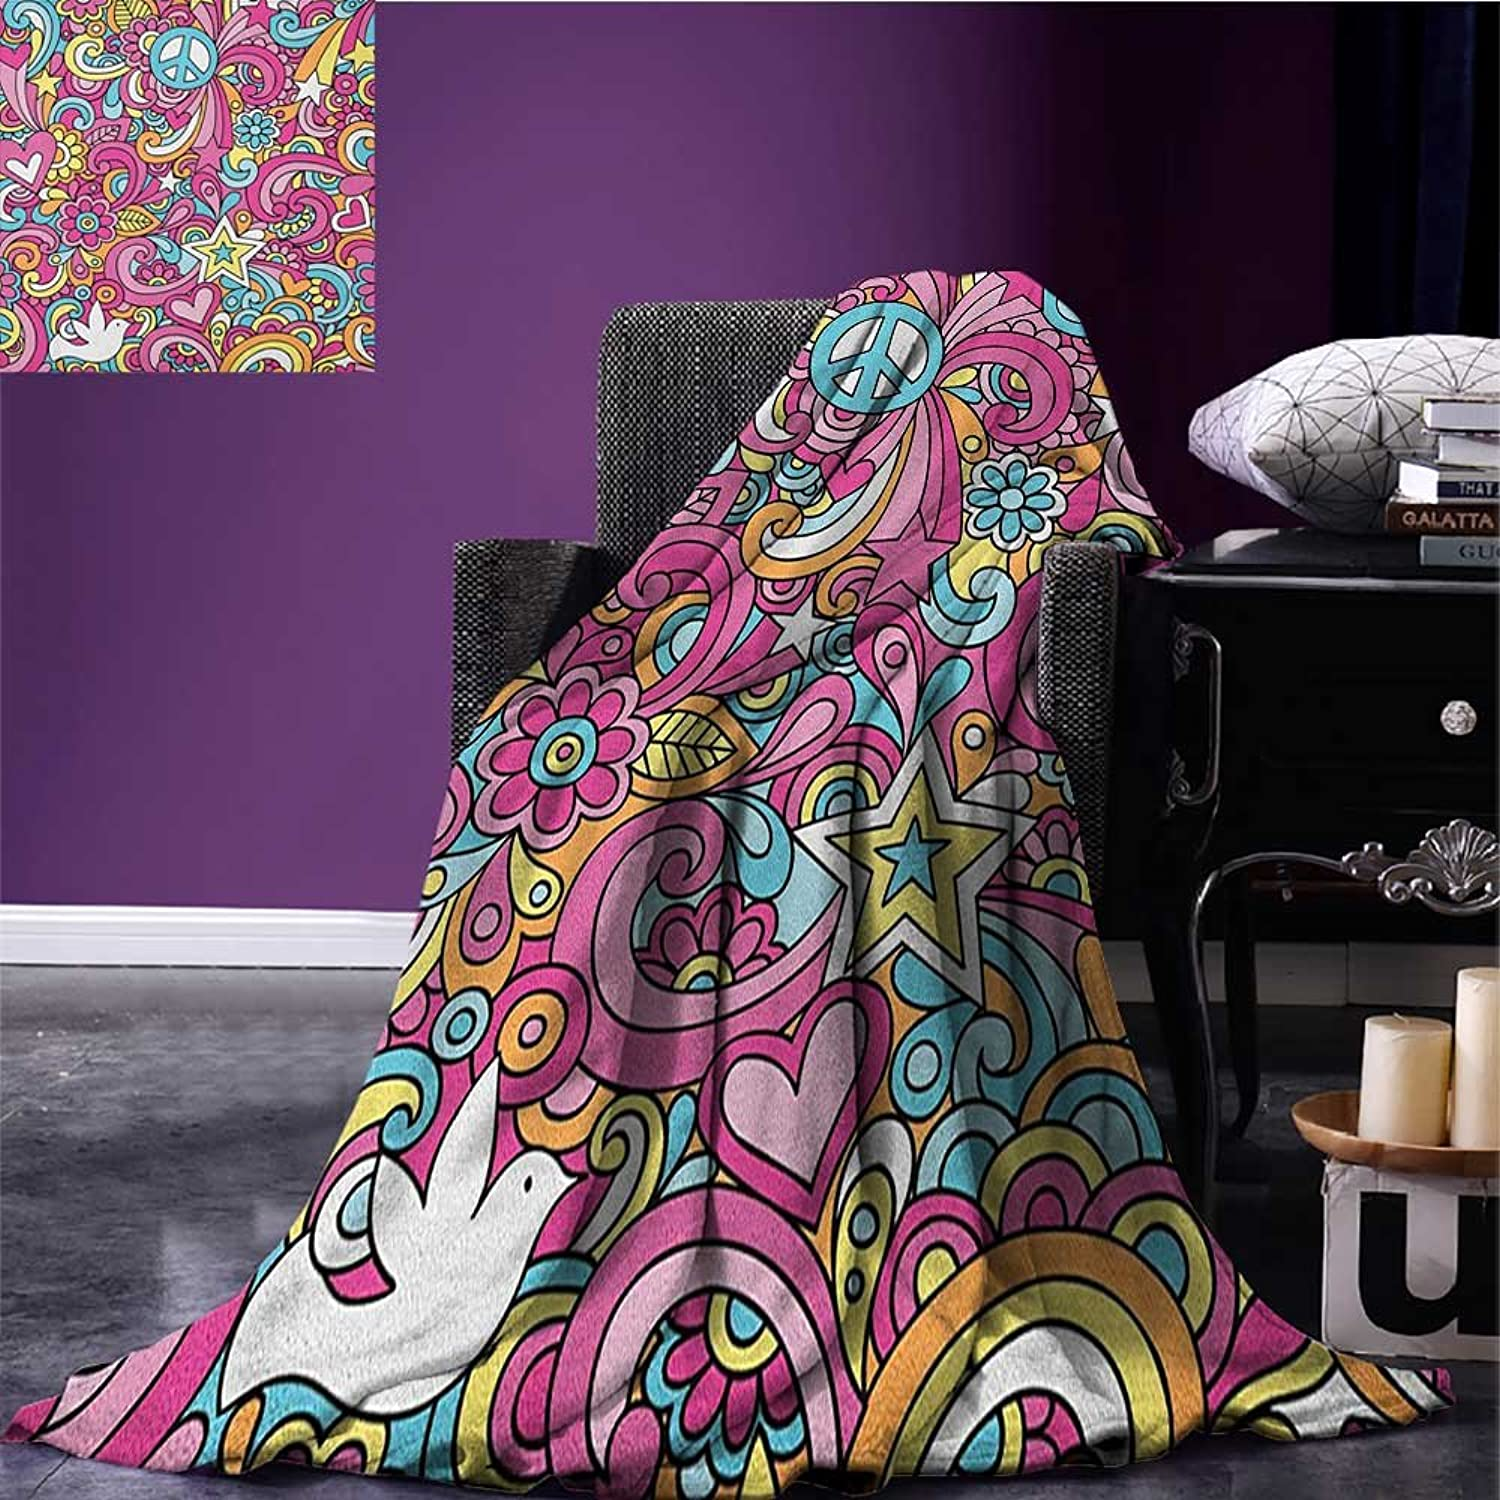 Groovy Emergency Blanket Psychedelic Complex Funky Patterns with Stars Back to 60s Style Fun Retro Artsy Print Multicolor Size 59 x35.5